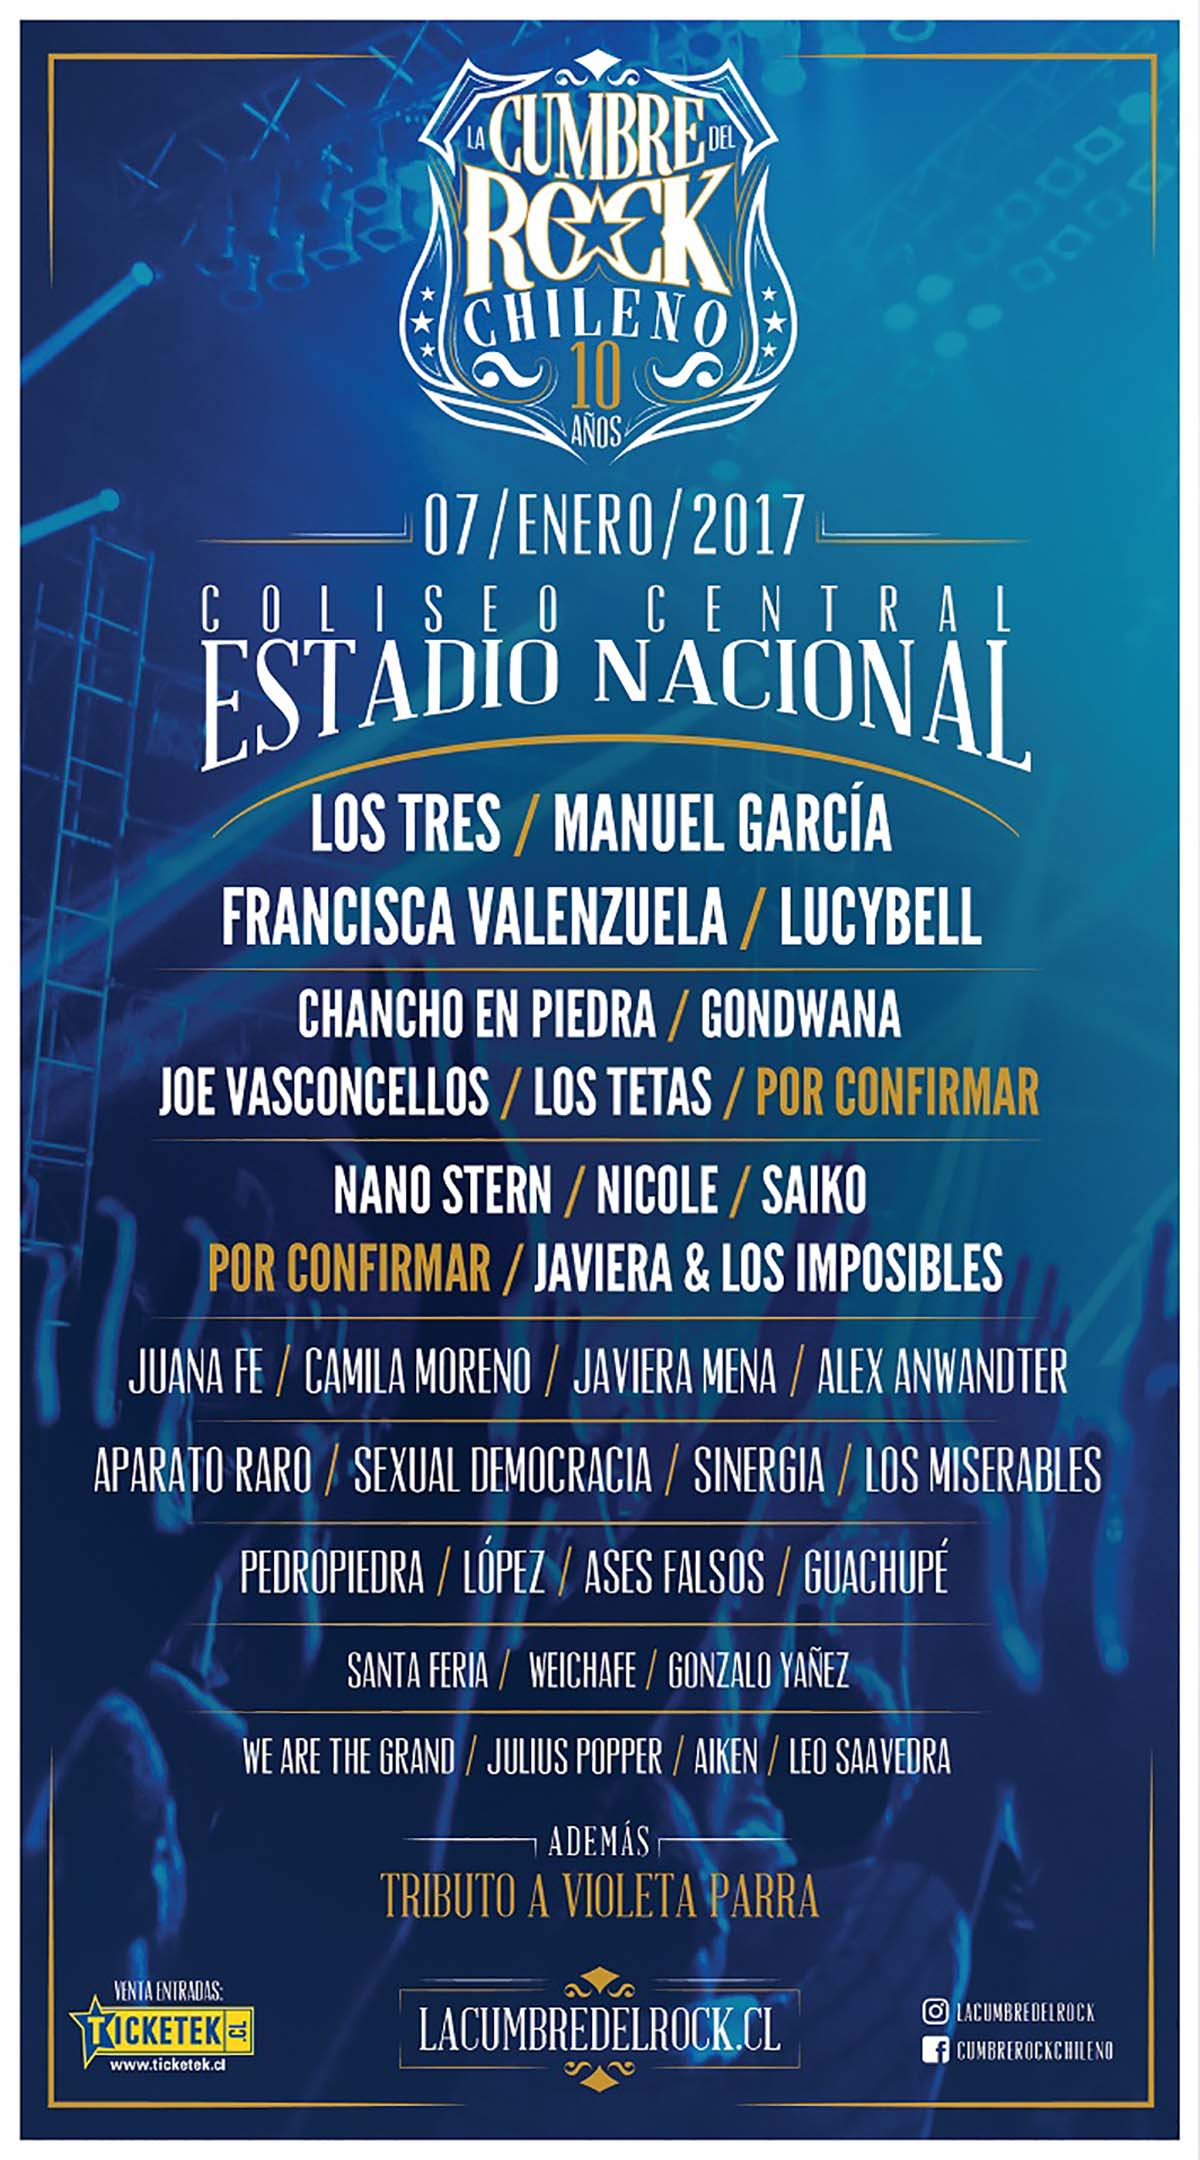 Cartel de Cumbre del rock chileno 2017